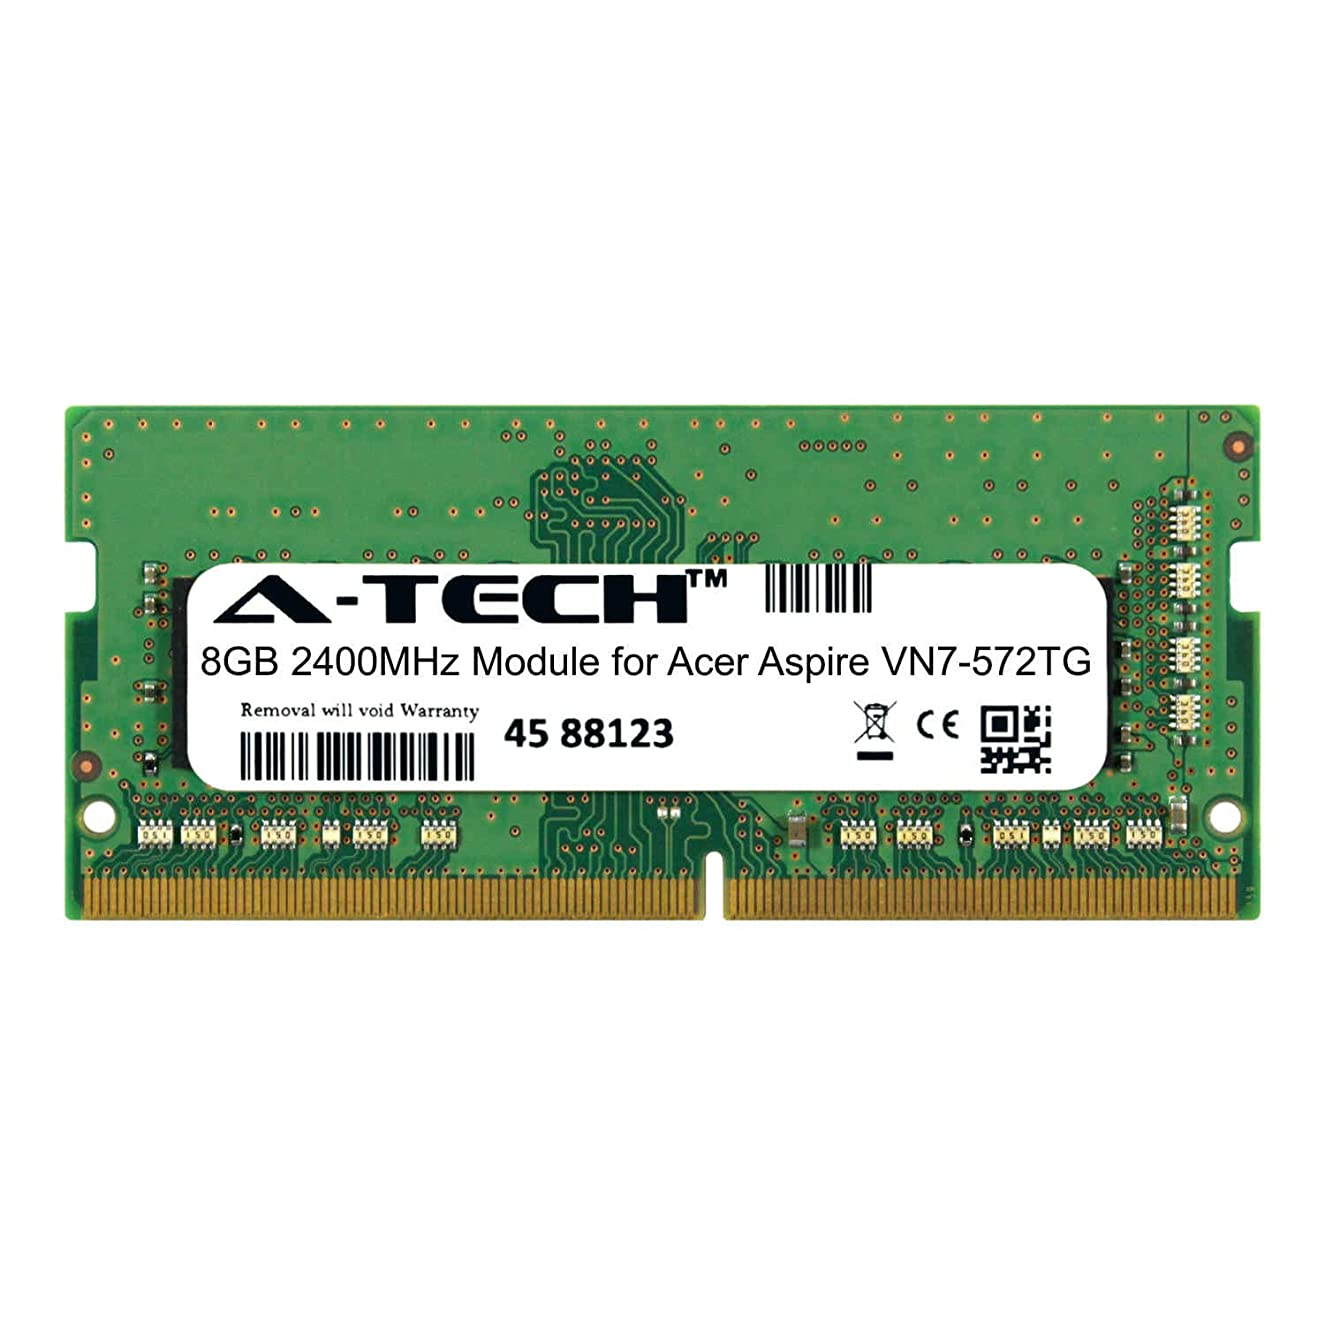 A-Tech 8GB Module for Acer Aspire VN7-572TG Laptop & Notebook Compatible DDR4 2400Mhz Memory Ram (ATMS268030A25827X1)